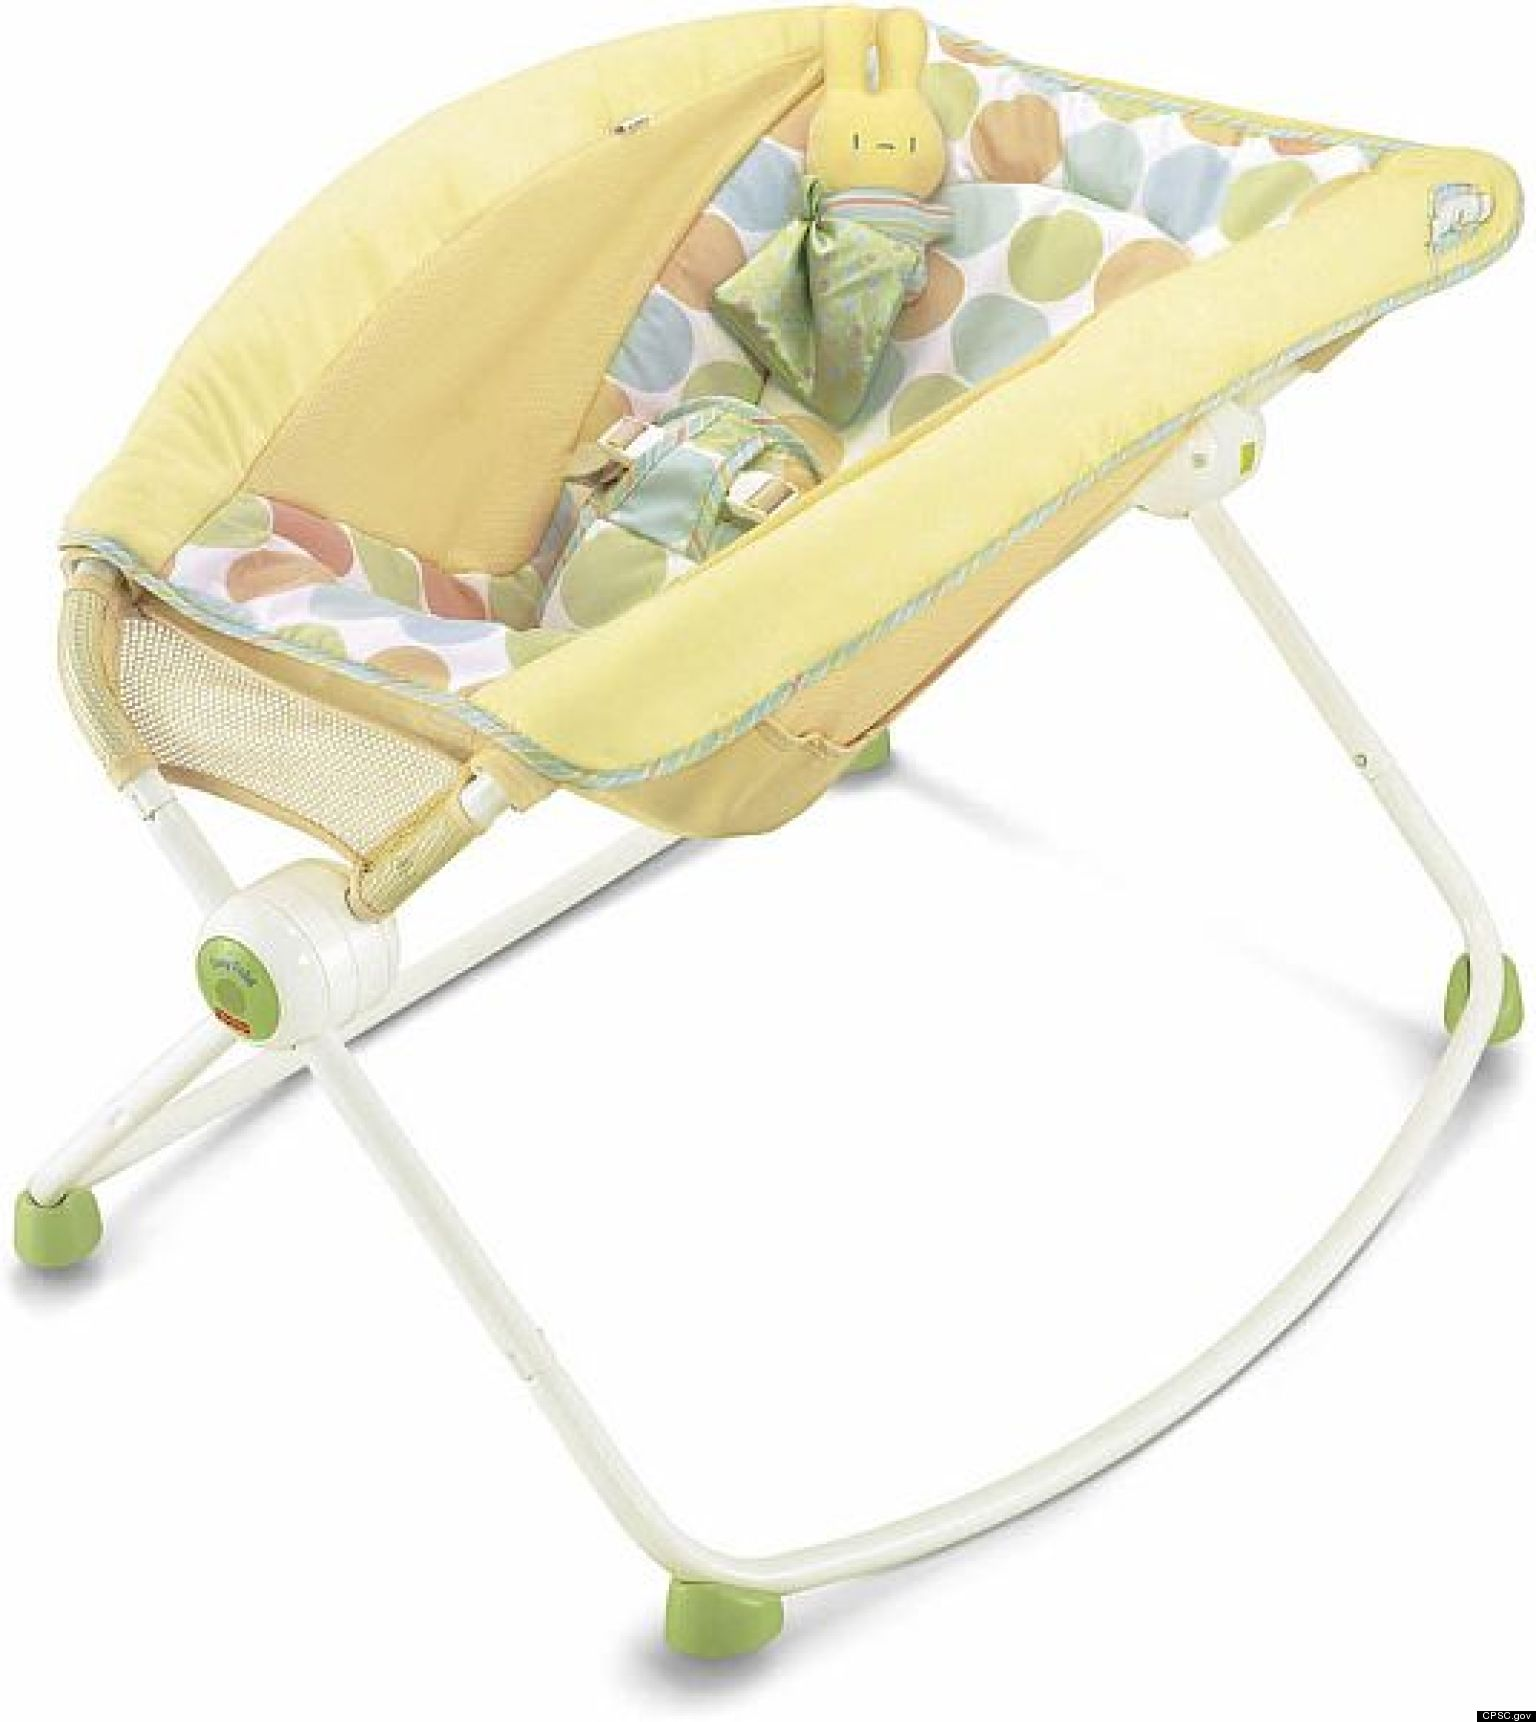 The 6 best bassinets around. From the innovative Halo Swivel Bassinest, to the classic Arm's Reach Co-Sleeper to the pricey but worth it Snoo, these are bassinets Babylist parents love most.